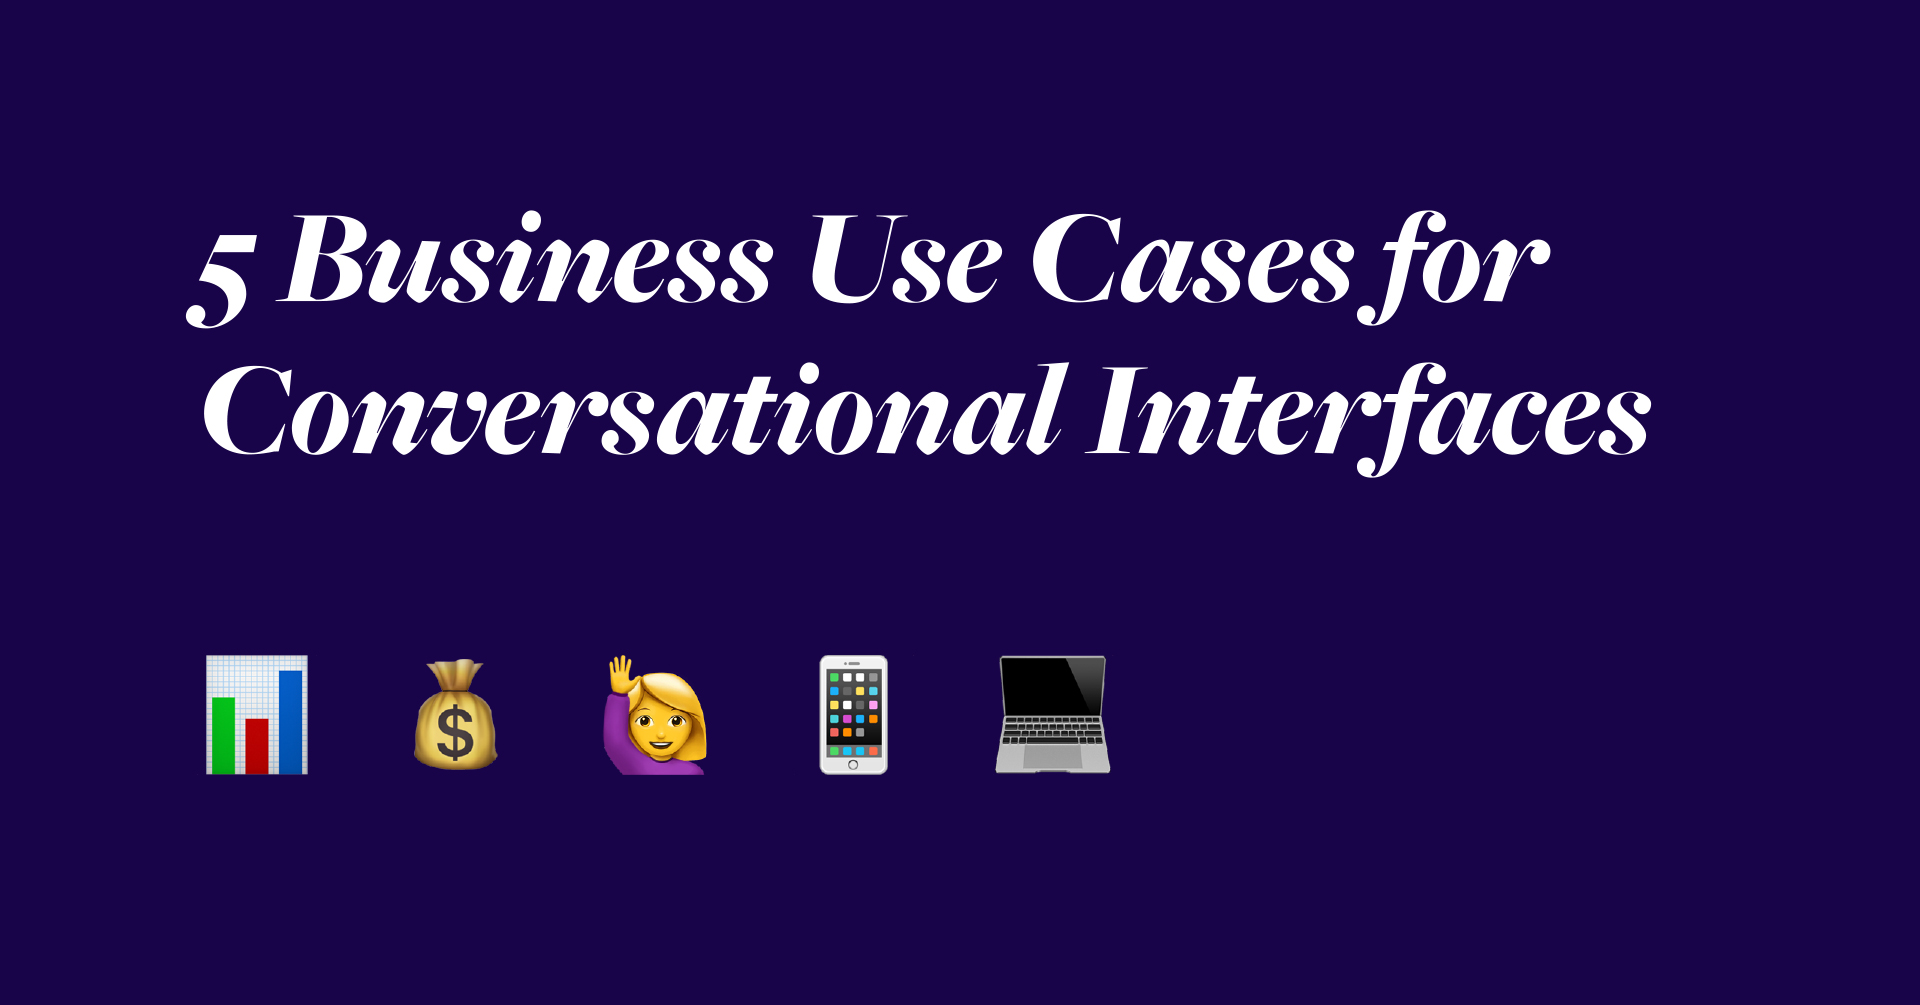 5 Business Use Cases for Conversational Interfaces